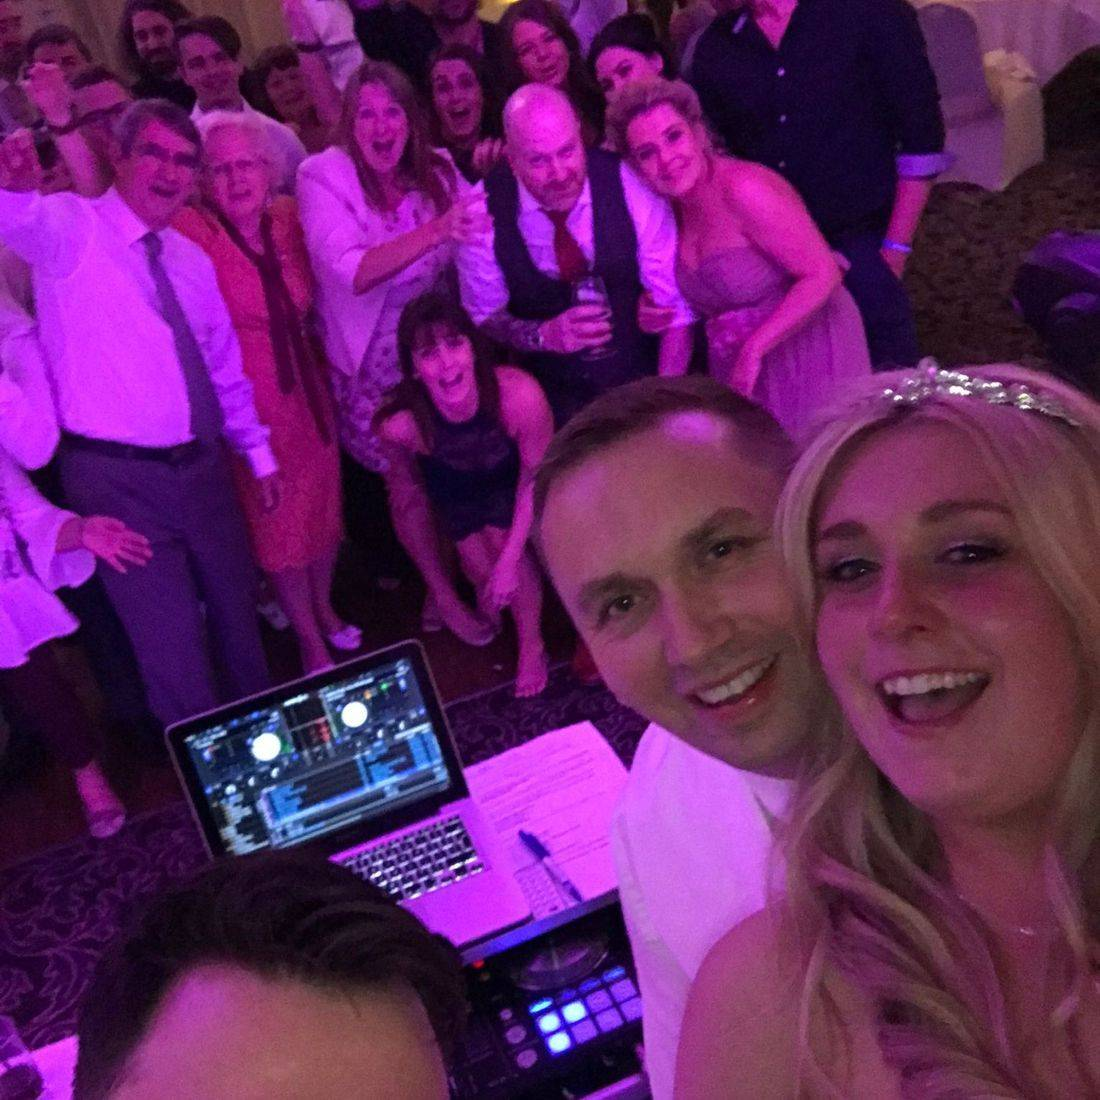 Wedding DJ New Hall Birmingham, #DJ #WeddingDJ #birmingham